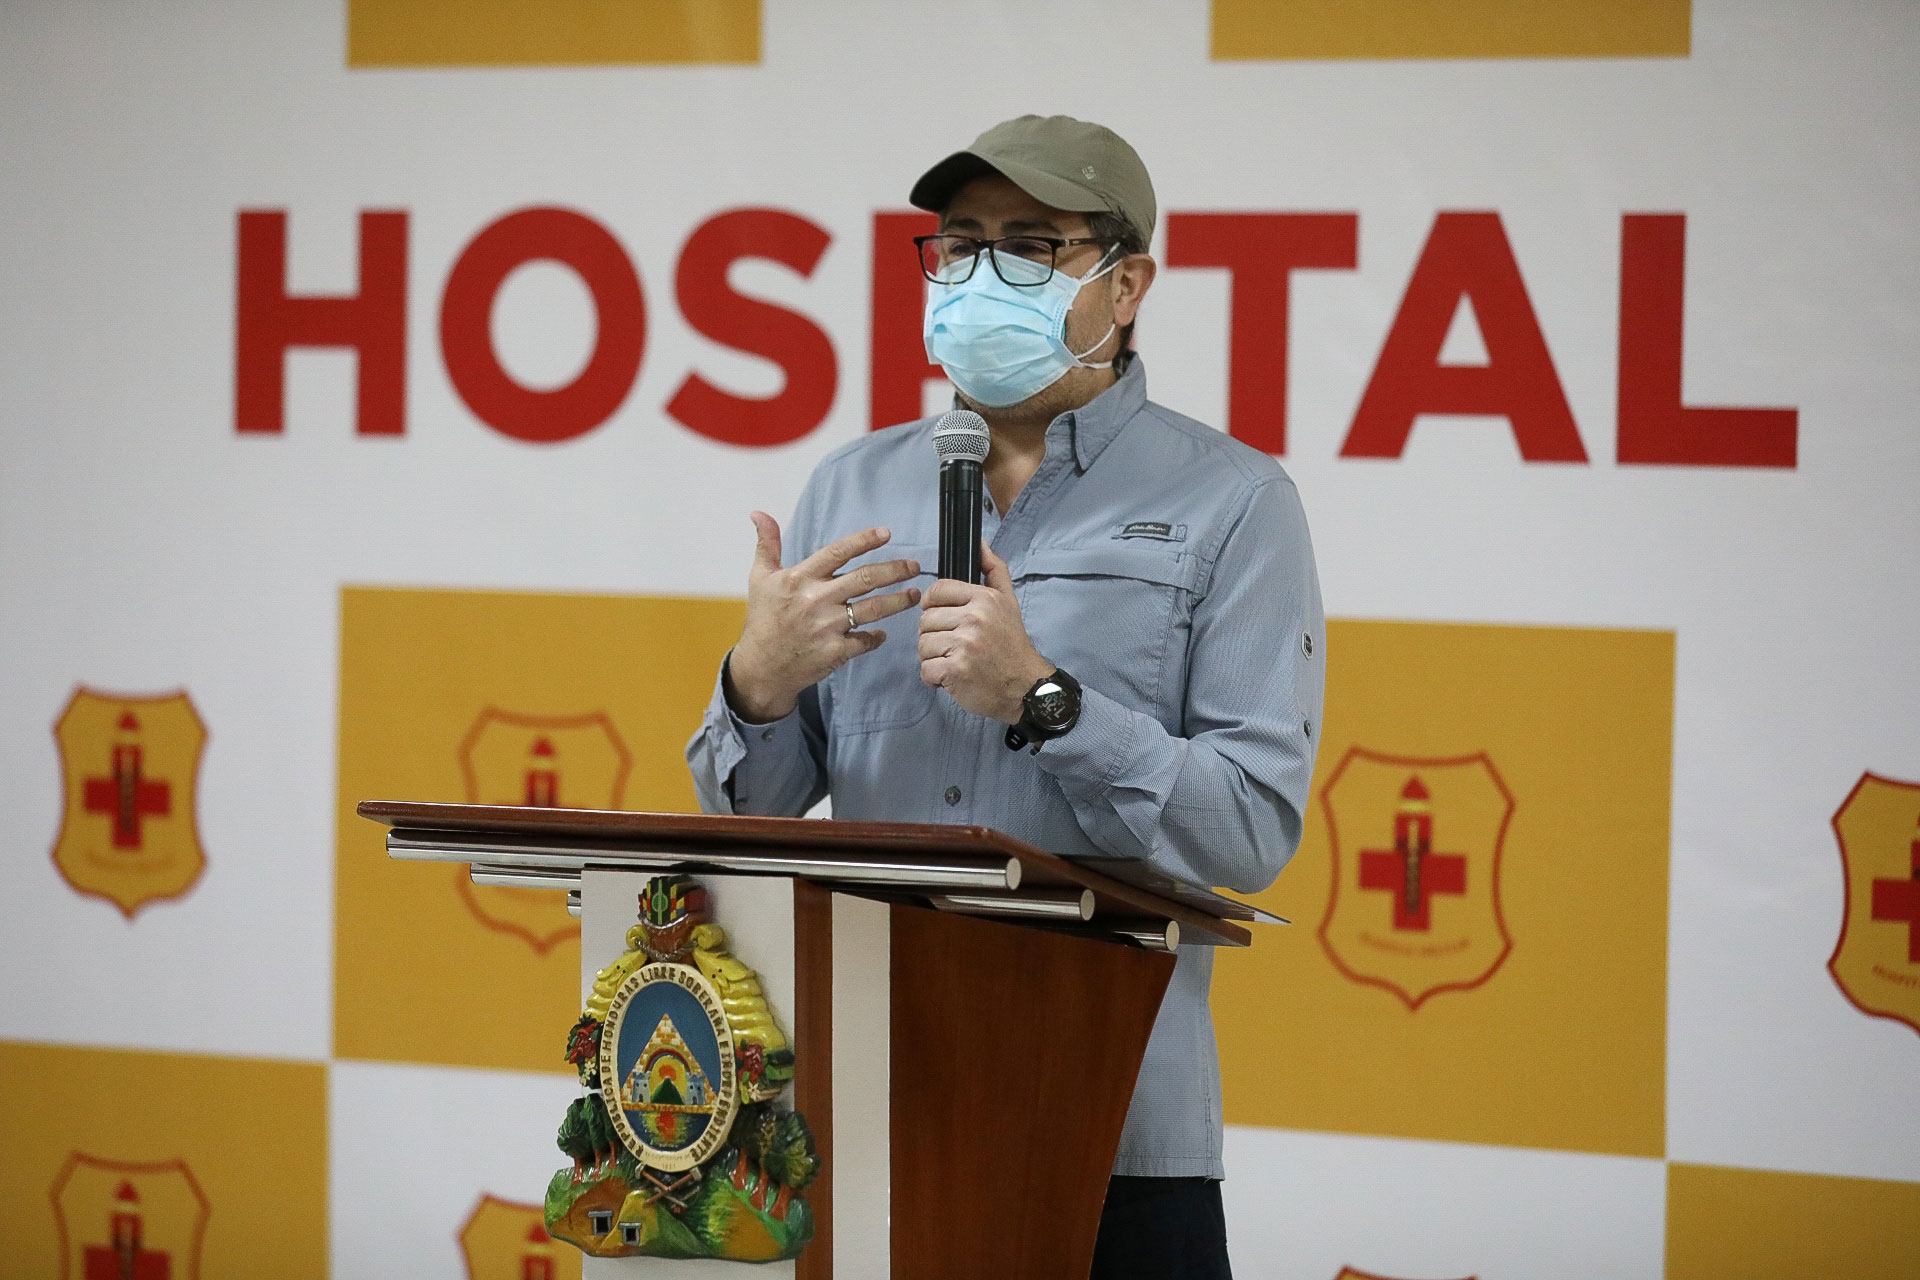 Honduras' President Juan Orlando Hernandez delivers a speech whilst being discharged from hospital after contracting the coronavirus disease at the Military Hospital in Tegucigalpa, Honduras, on July 2.